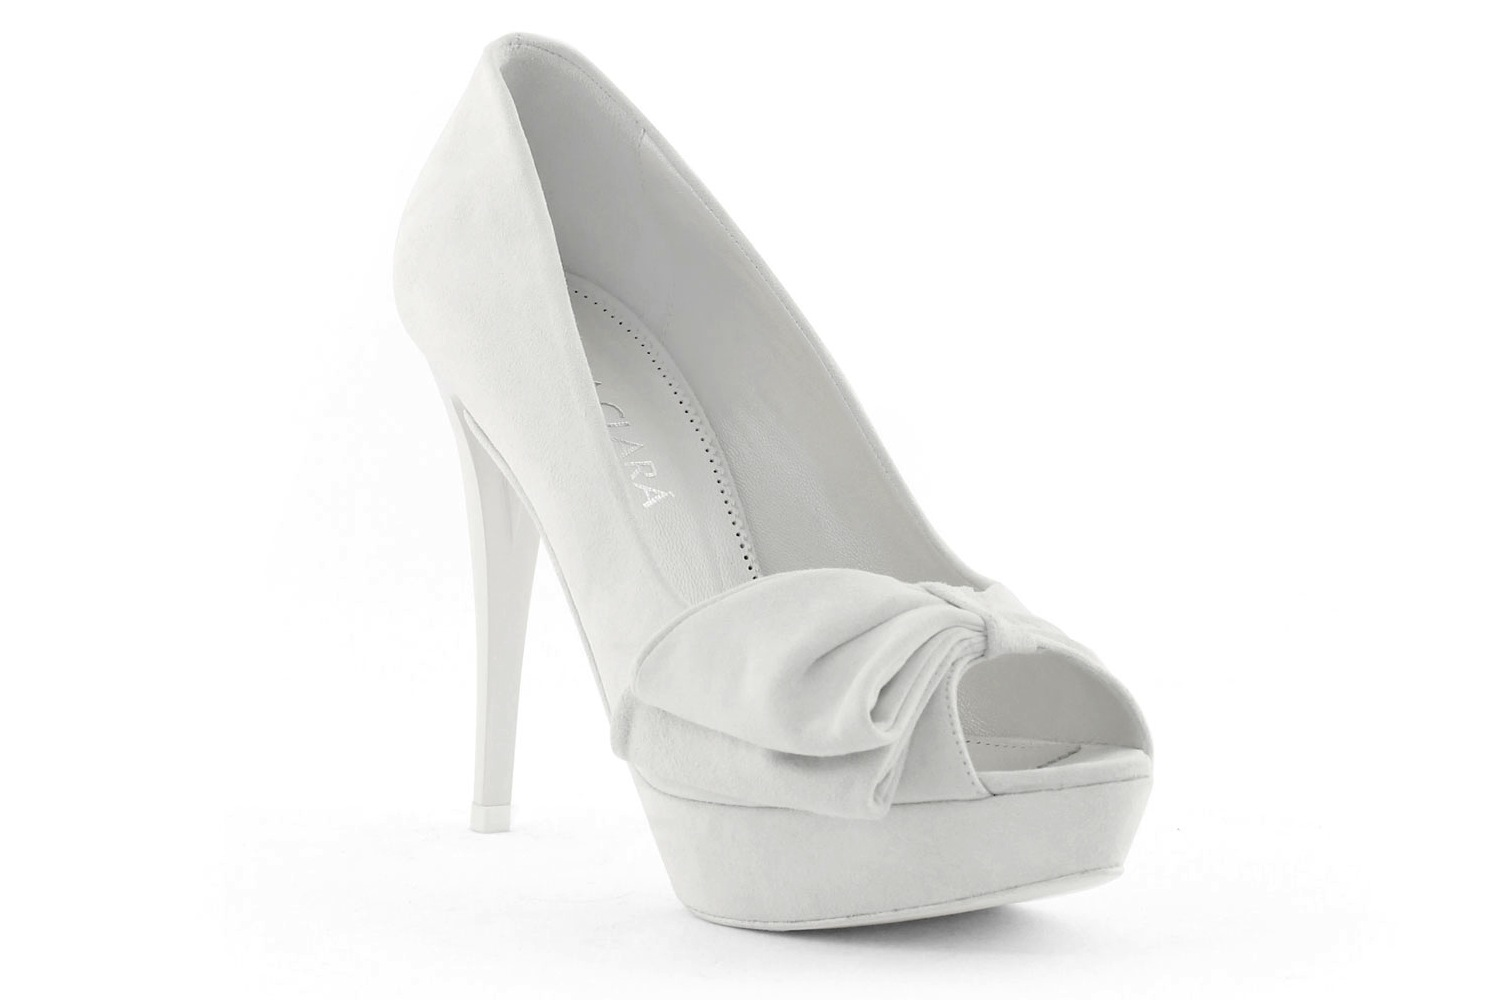 Wedding-shoes-bridal-heels-by-rosa-clara-2013-vintage-inspired.original